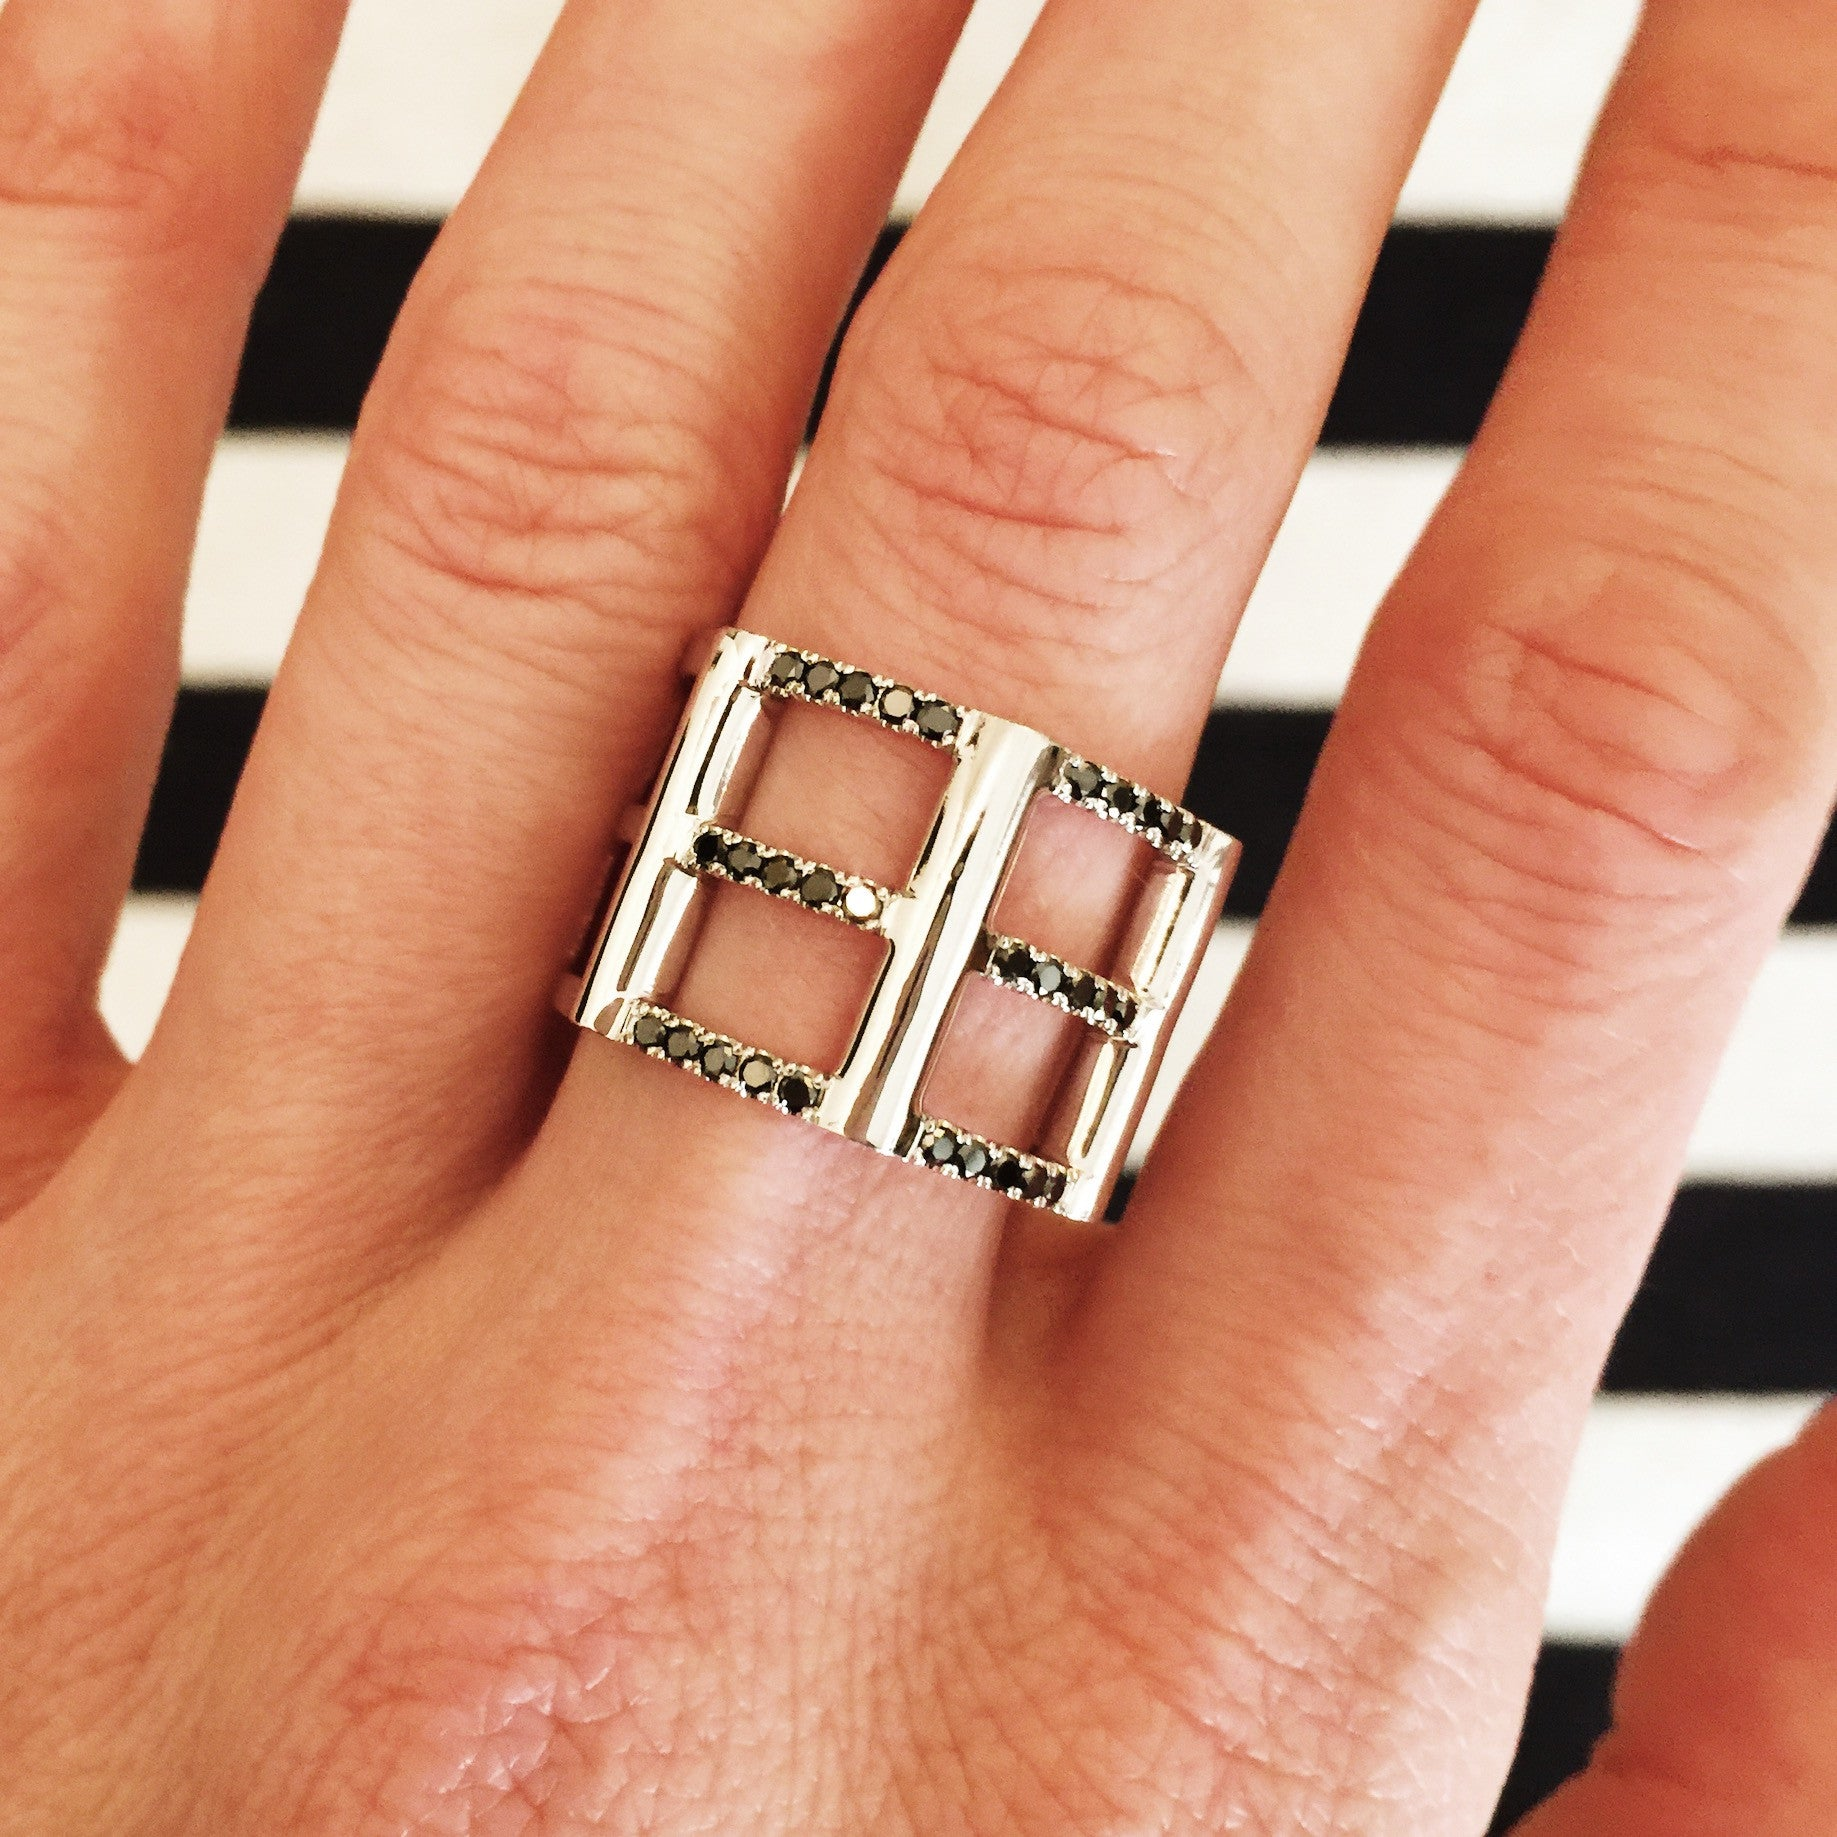 Cage Ring | White Gold with Black Diamonds